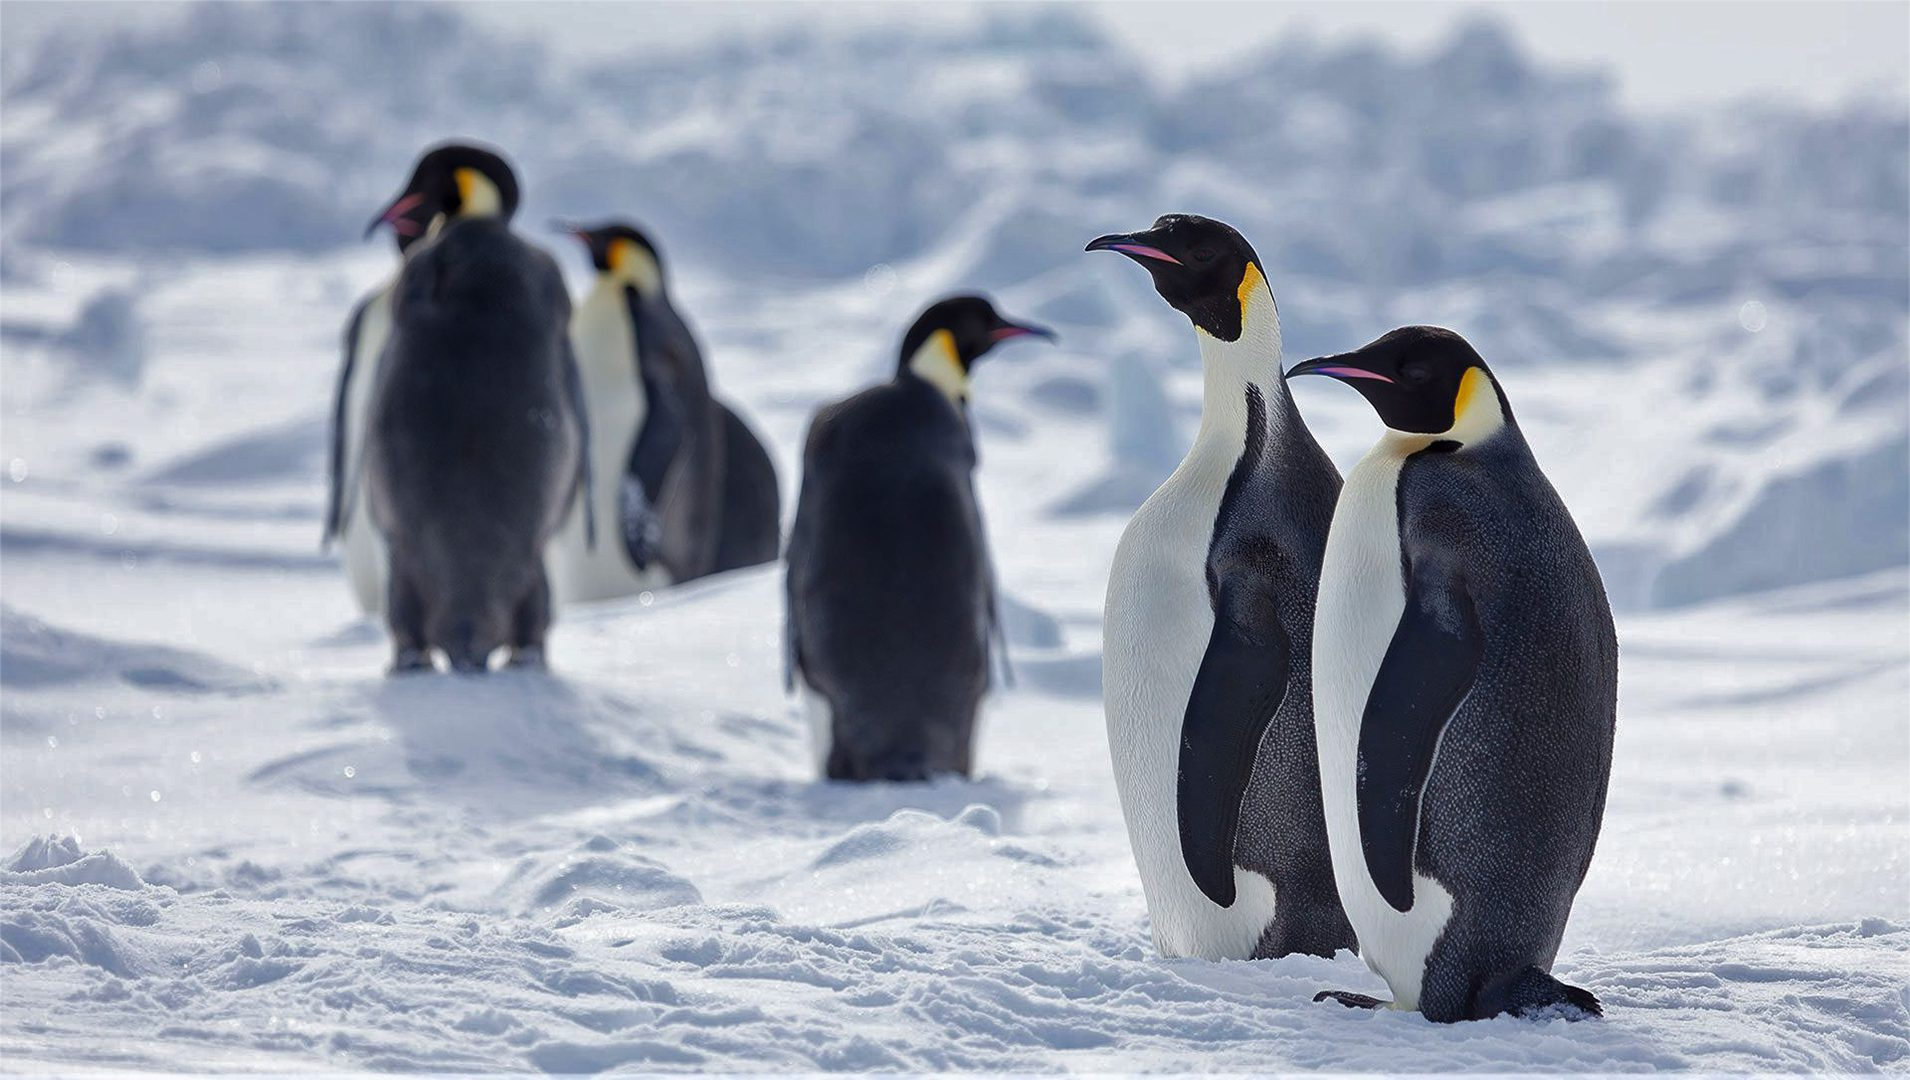 Emperor penguins, recommended as threatened species under Endangered Species Act